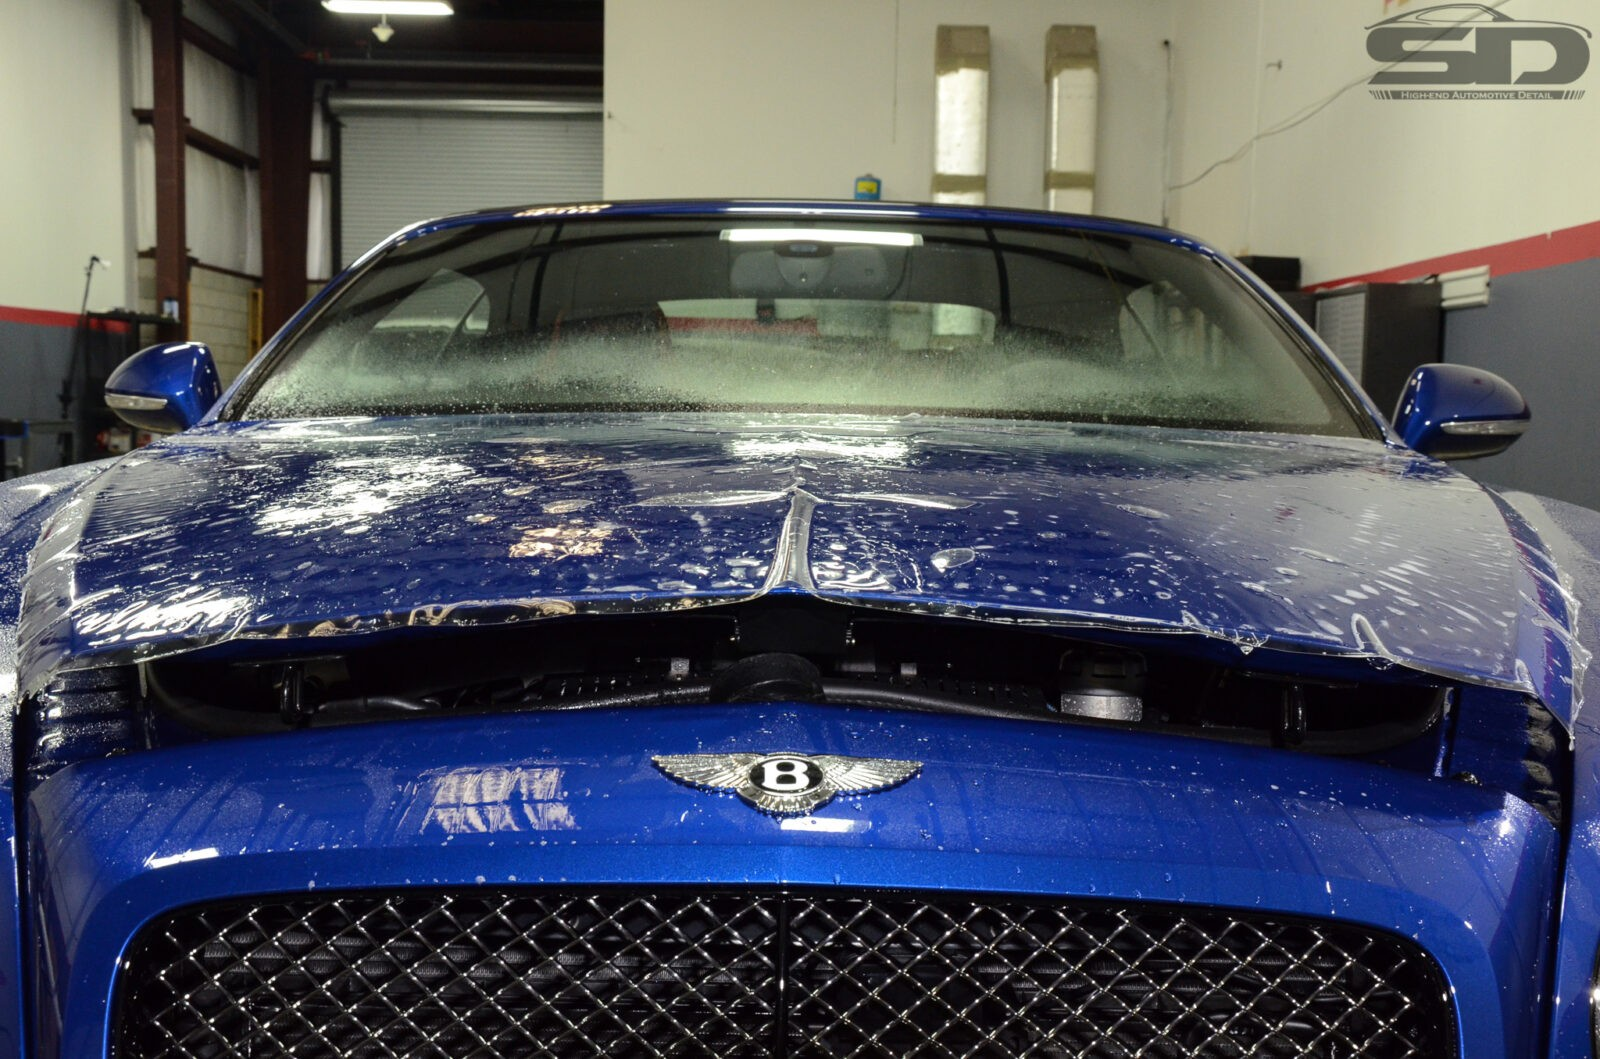 Bentley GTC, Bentley of Orlando, Bentley Orlando, Superior Detailer, Orlando, PPF, Paint Protection Film, Auto Detailing, Paint Protection Orlando, Paint Protection, Clearbra, Clear Bra, ClearBra Orlando